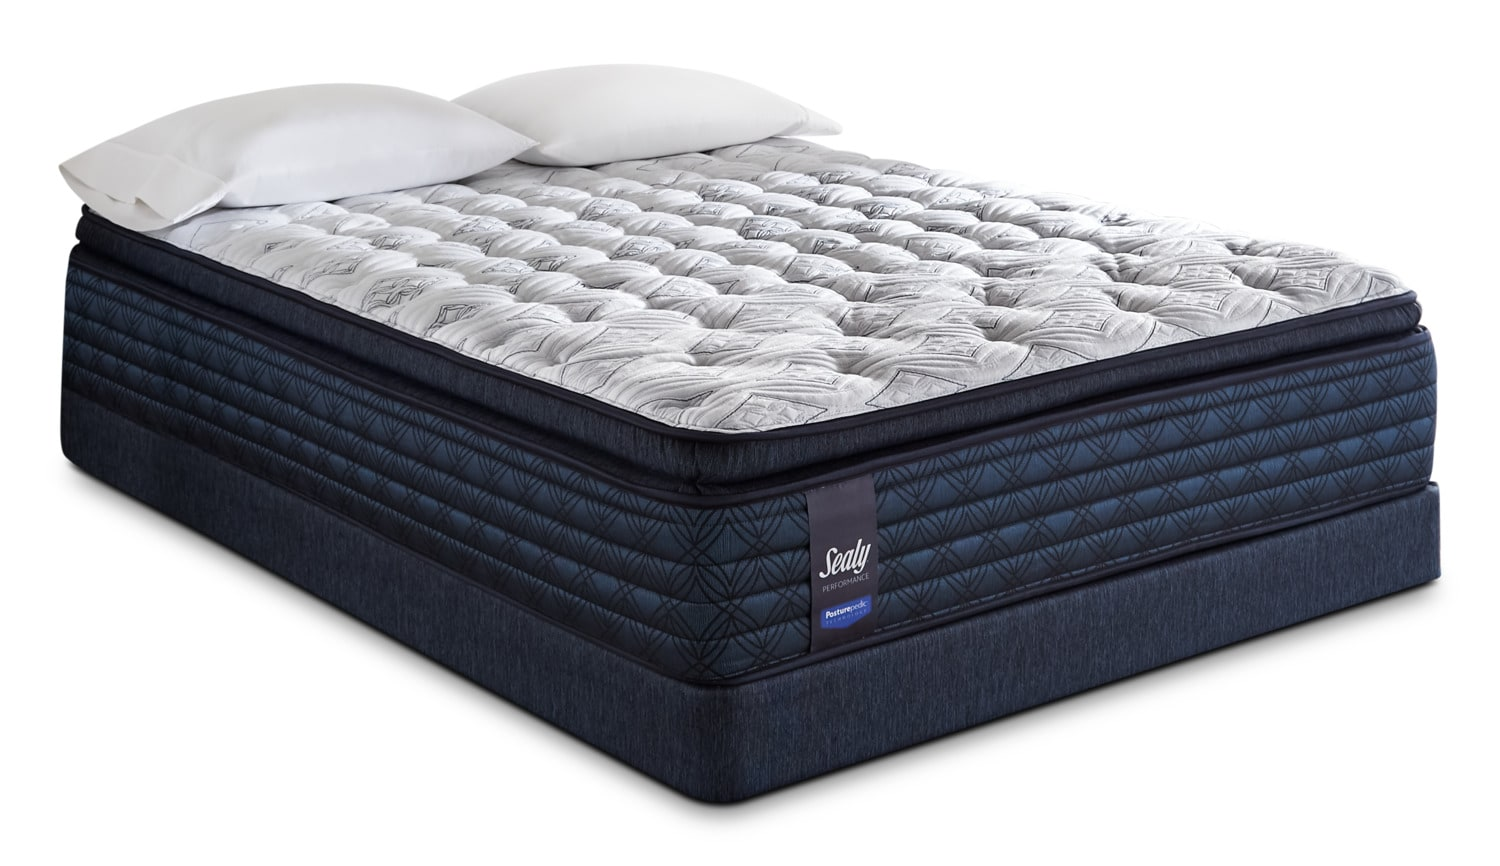 Mattresses and Bedding - Sealy Posturepedic Hillshire Pillow-Top Plush Queen Mattress Set